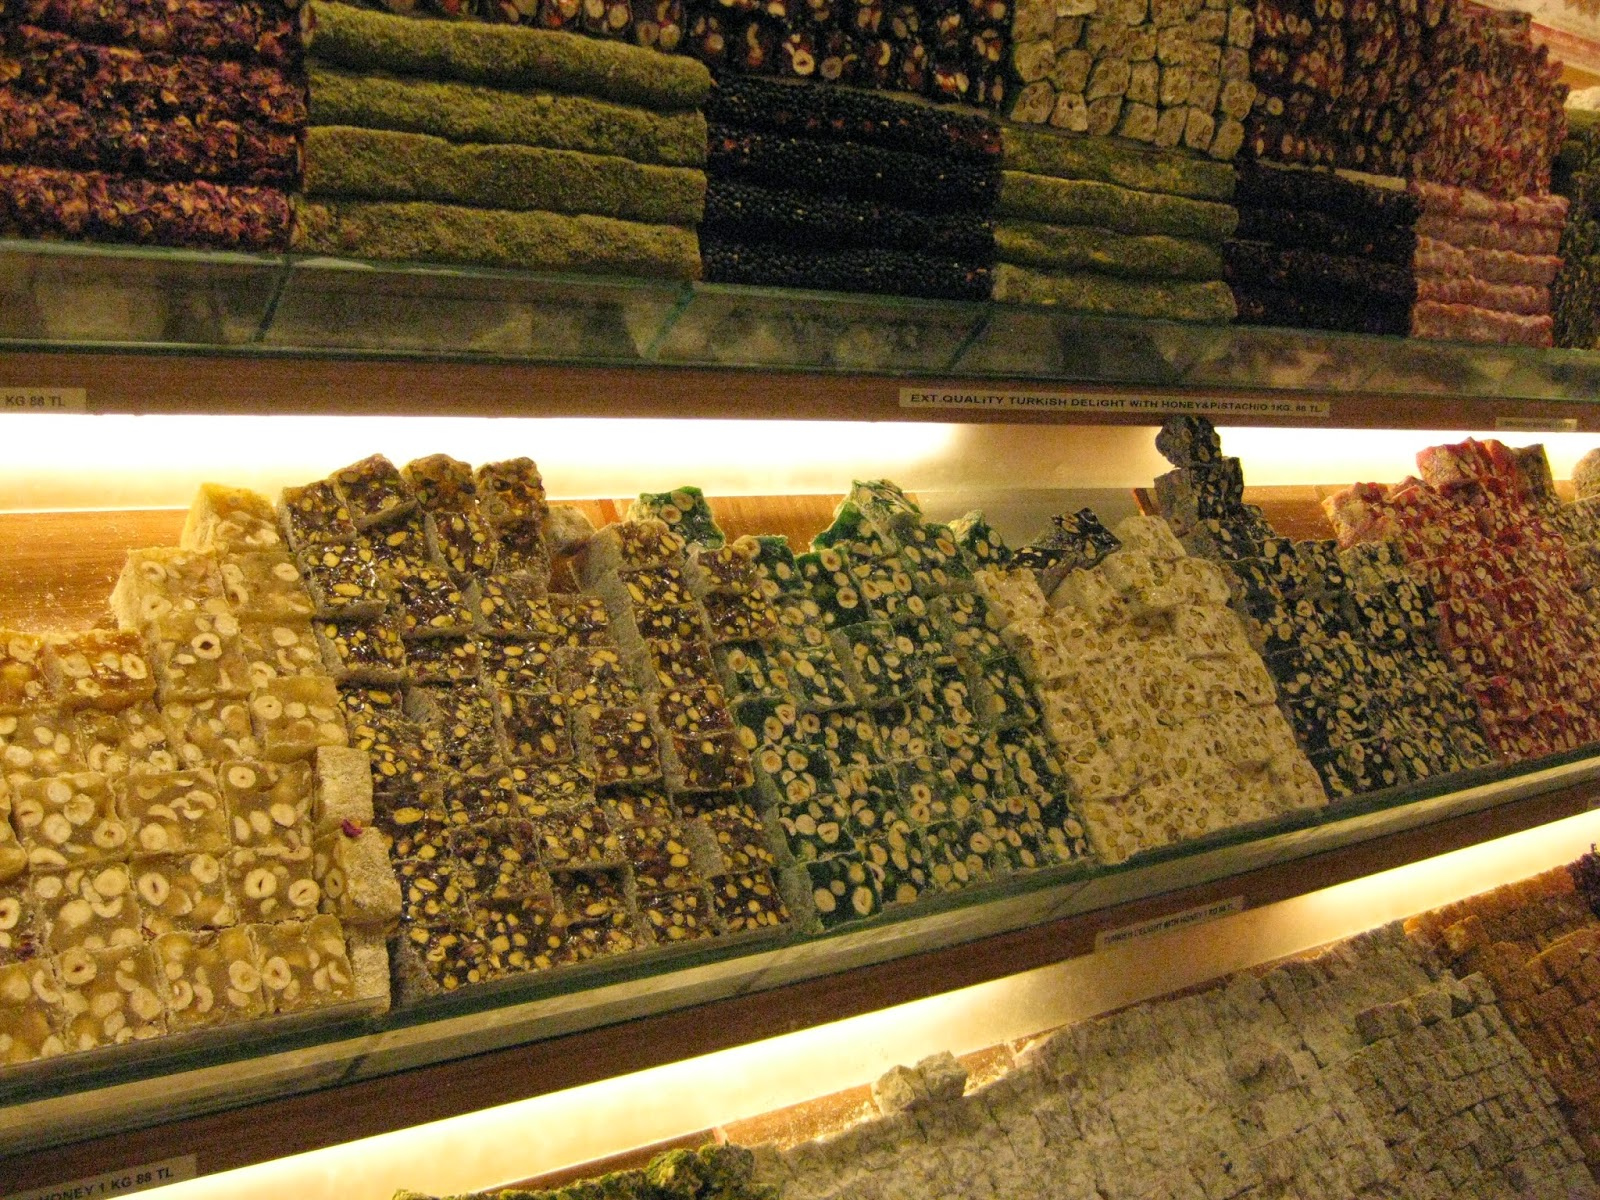 Istanbul - We picked up some Turkish Delight at the Grand Bazaar